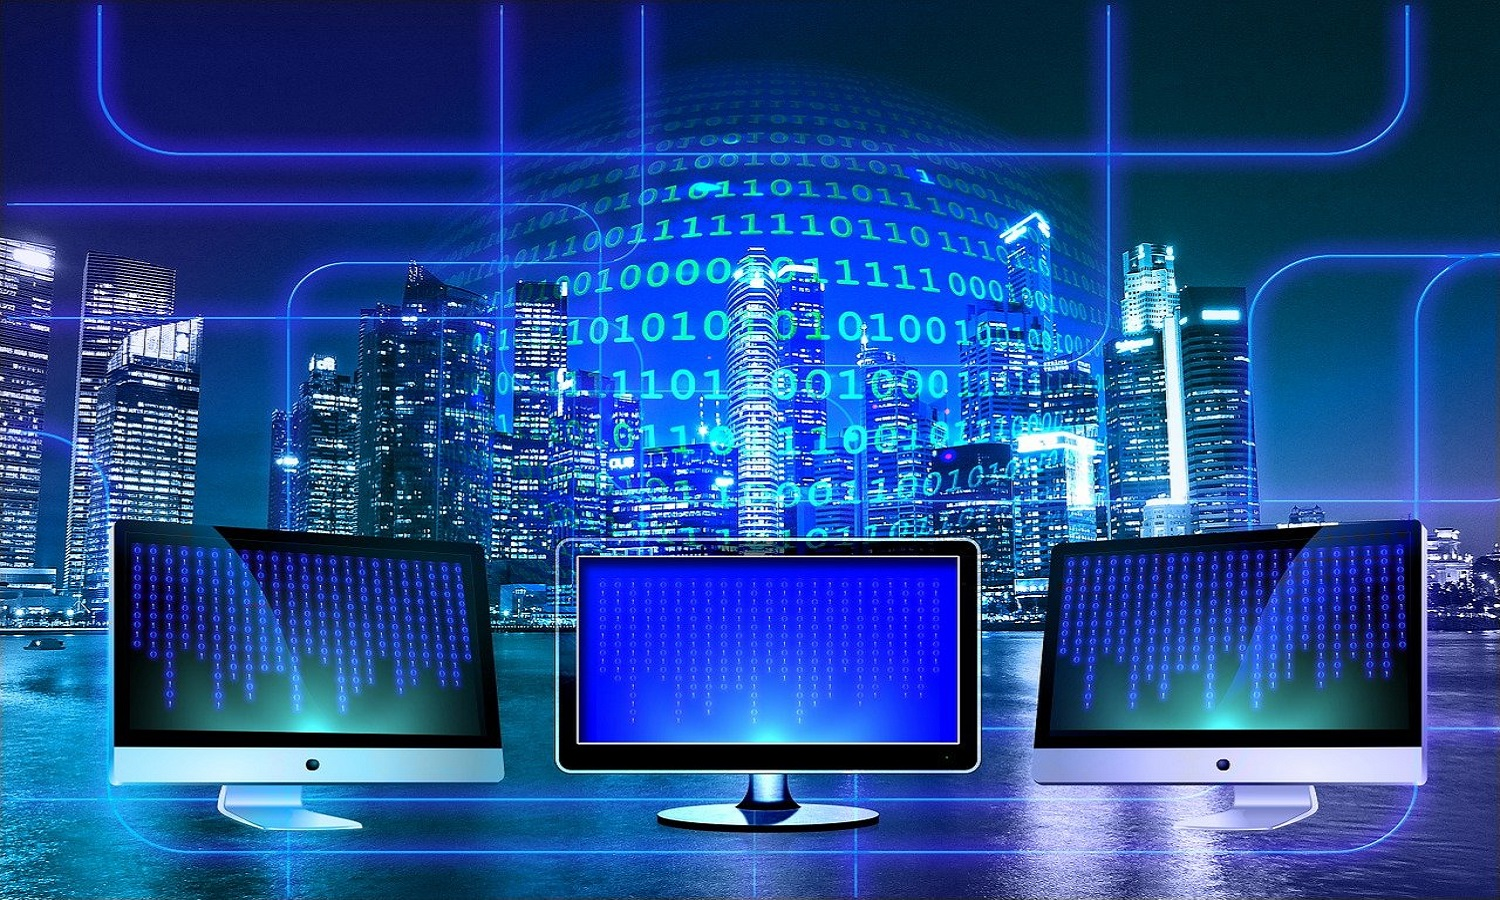 What Is An Industrial Computer And Its Role For Industrial Computing